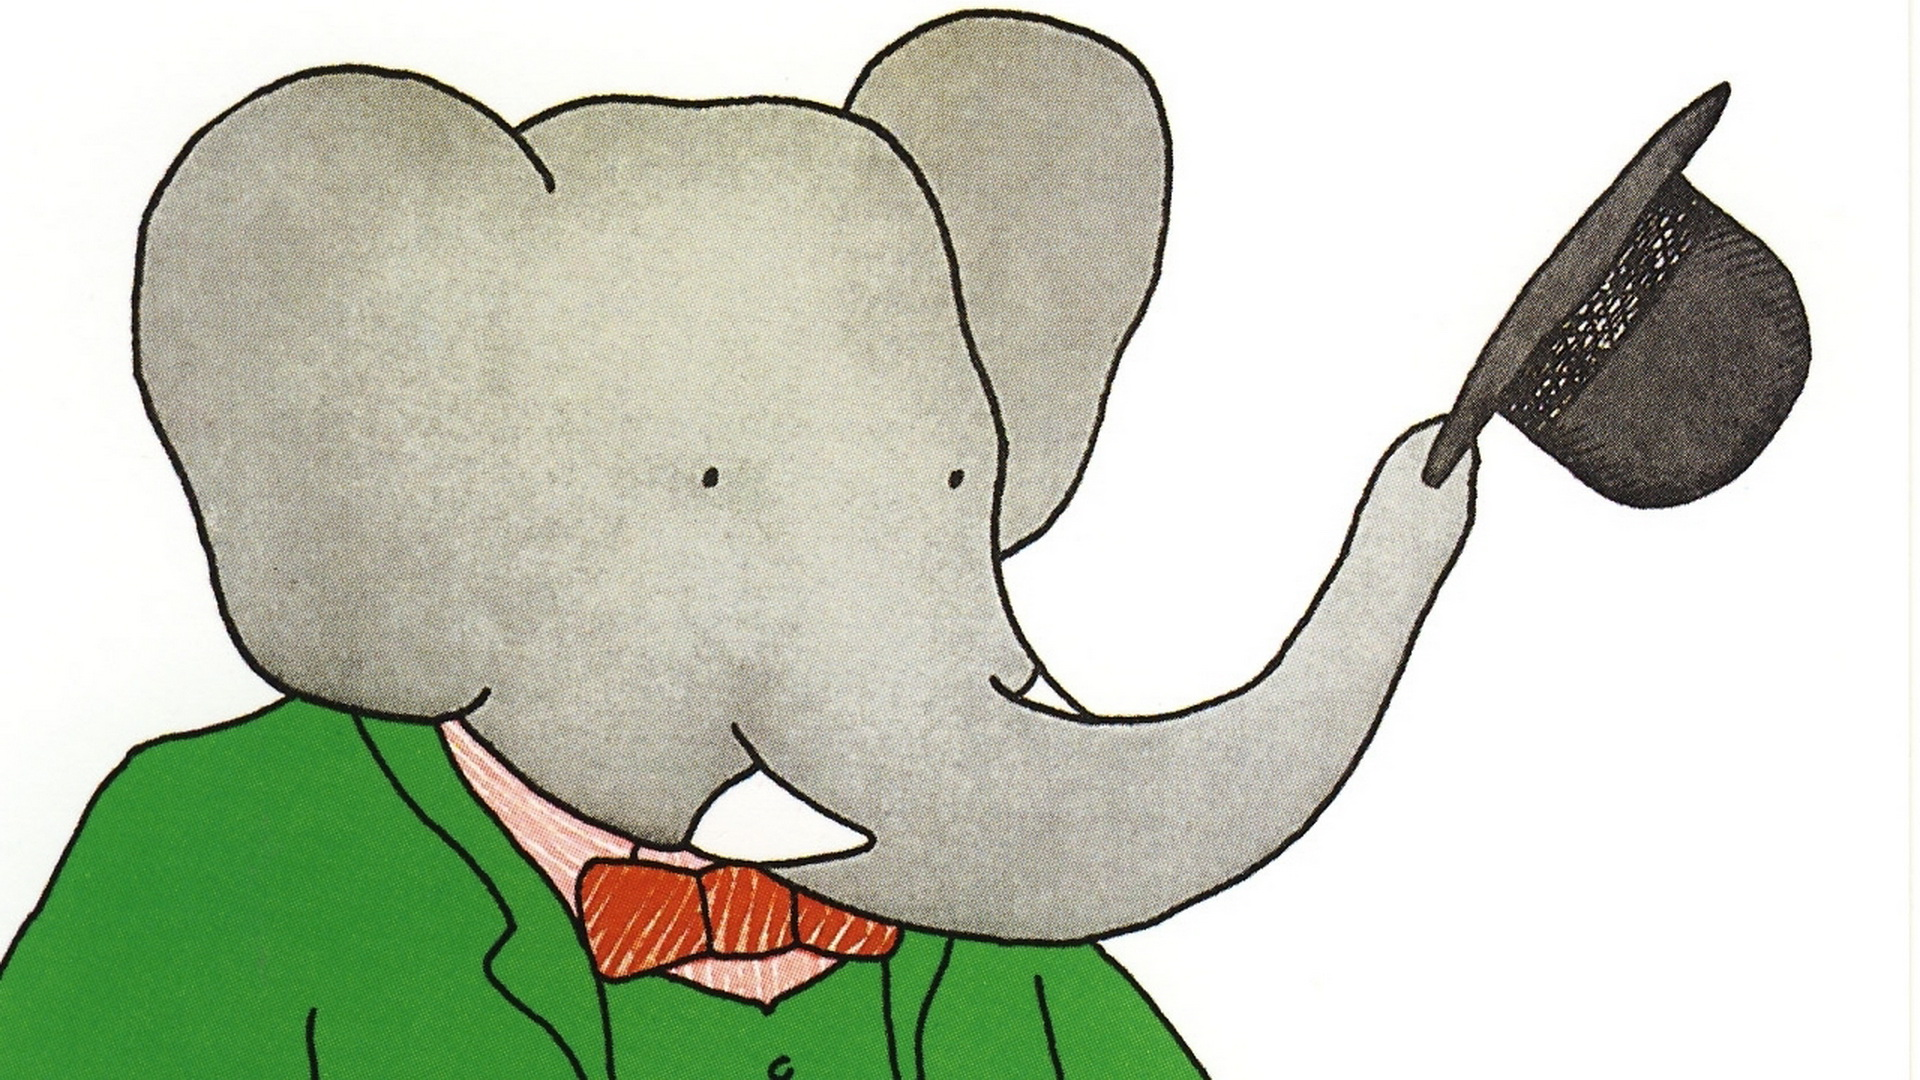 Babar-Wallpapers